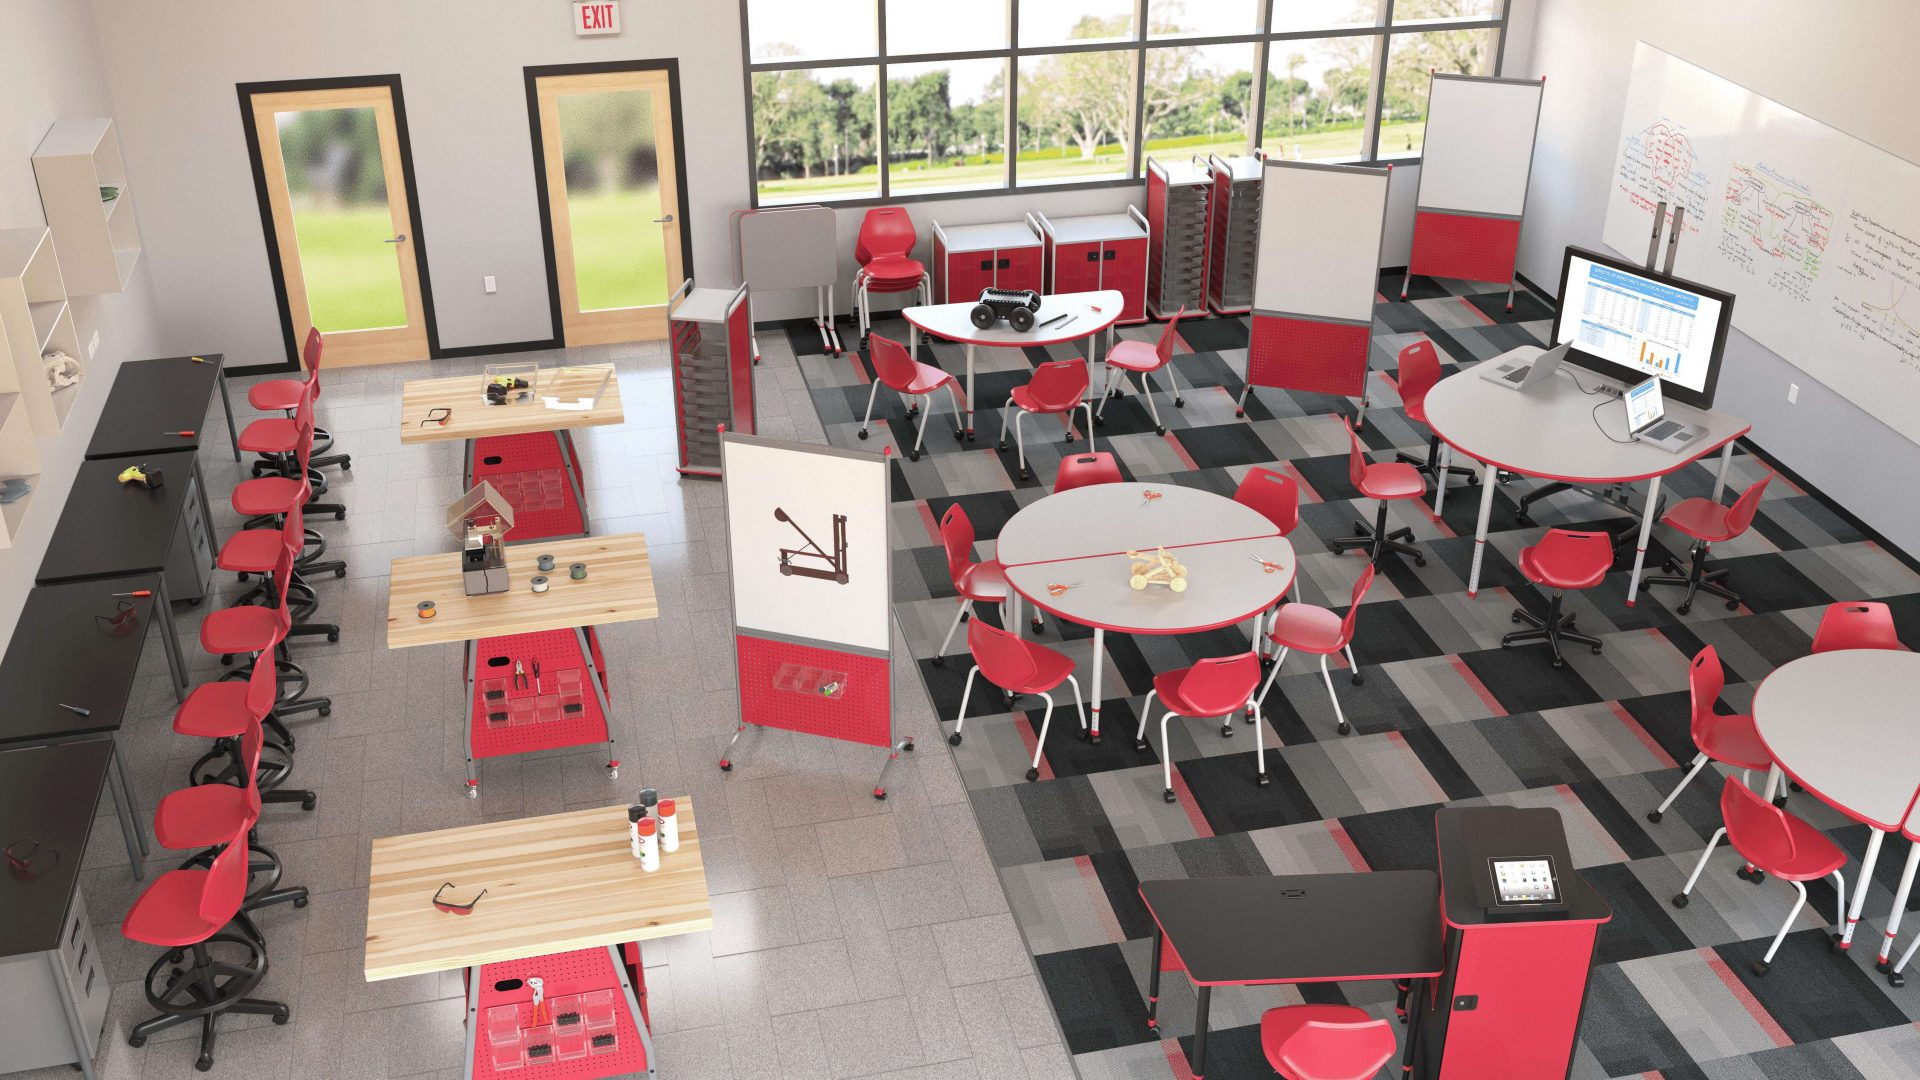 Birds-eye view 3D rendering of classroom with red collaborative school desks and chairs